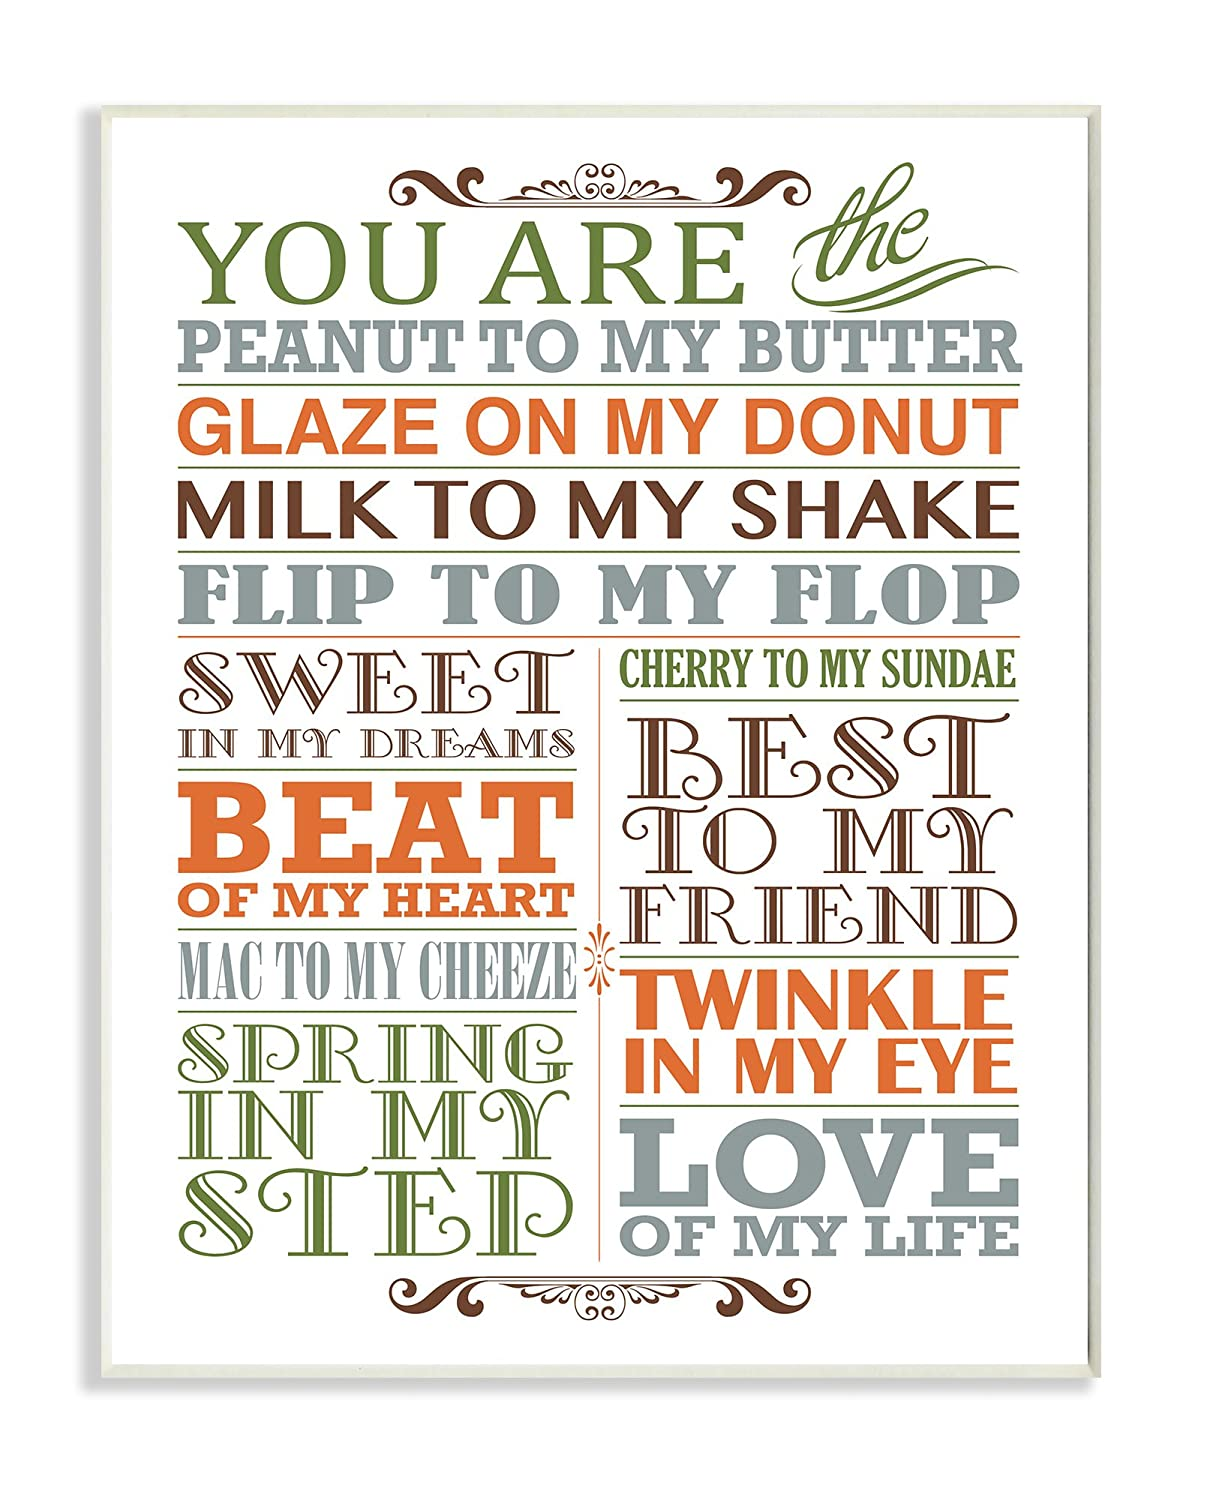 The Kids Room by Stupell You Are Peanut To My Butter Typography Art Wall Plaque 11 x 0.5 x 15 Proudly Made in USA Stupell Industries brp-1719